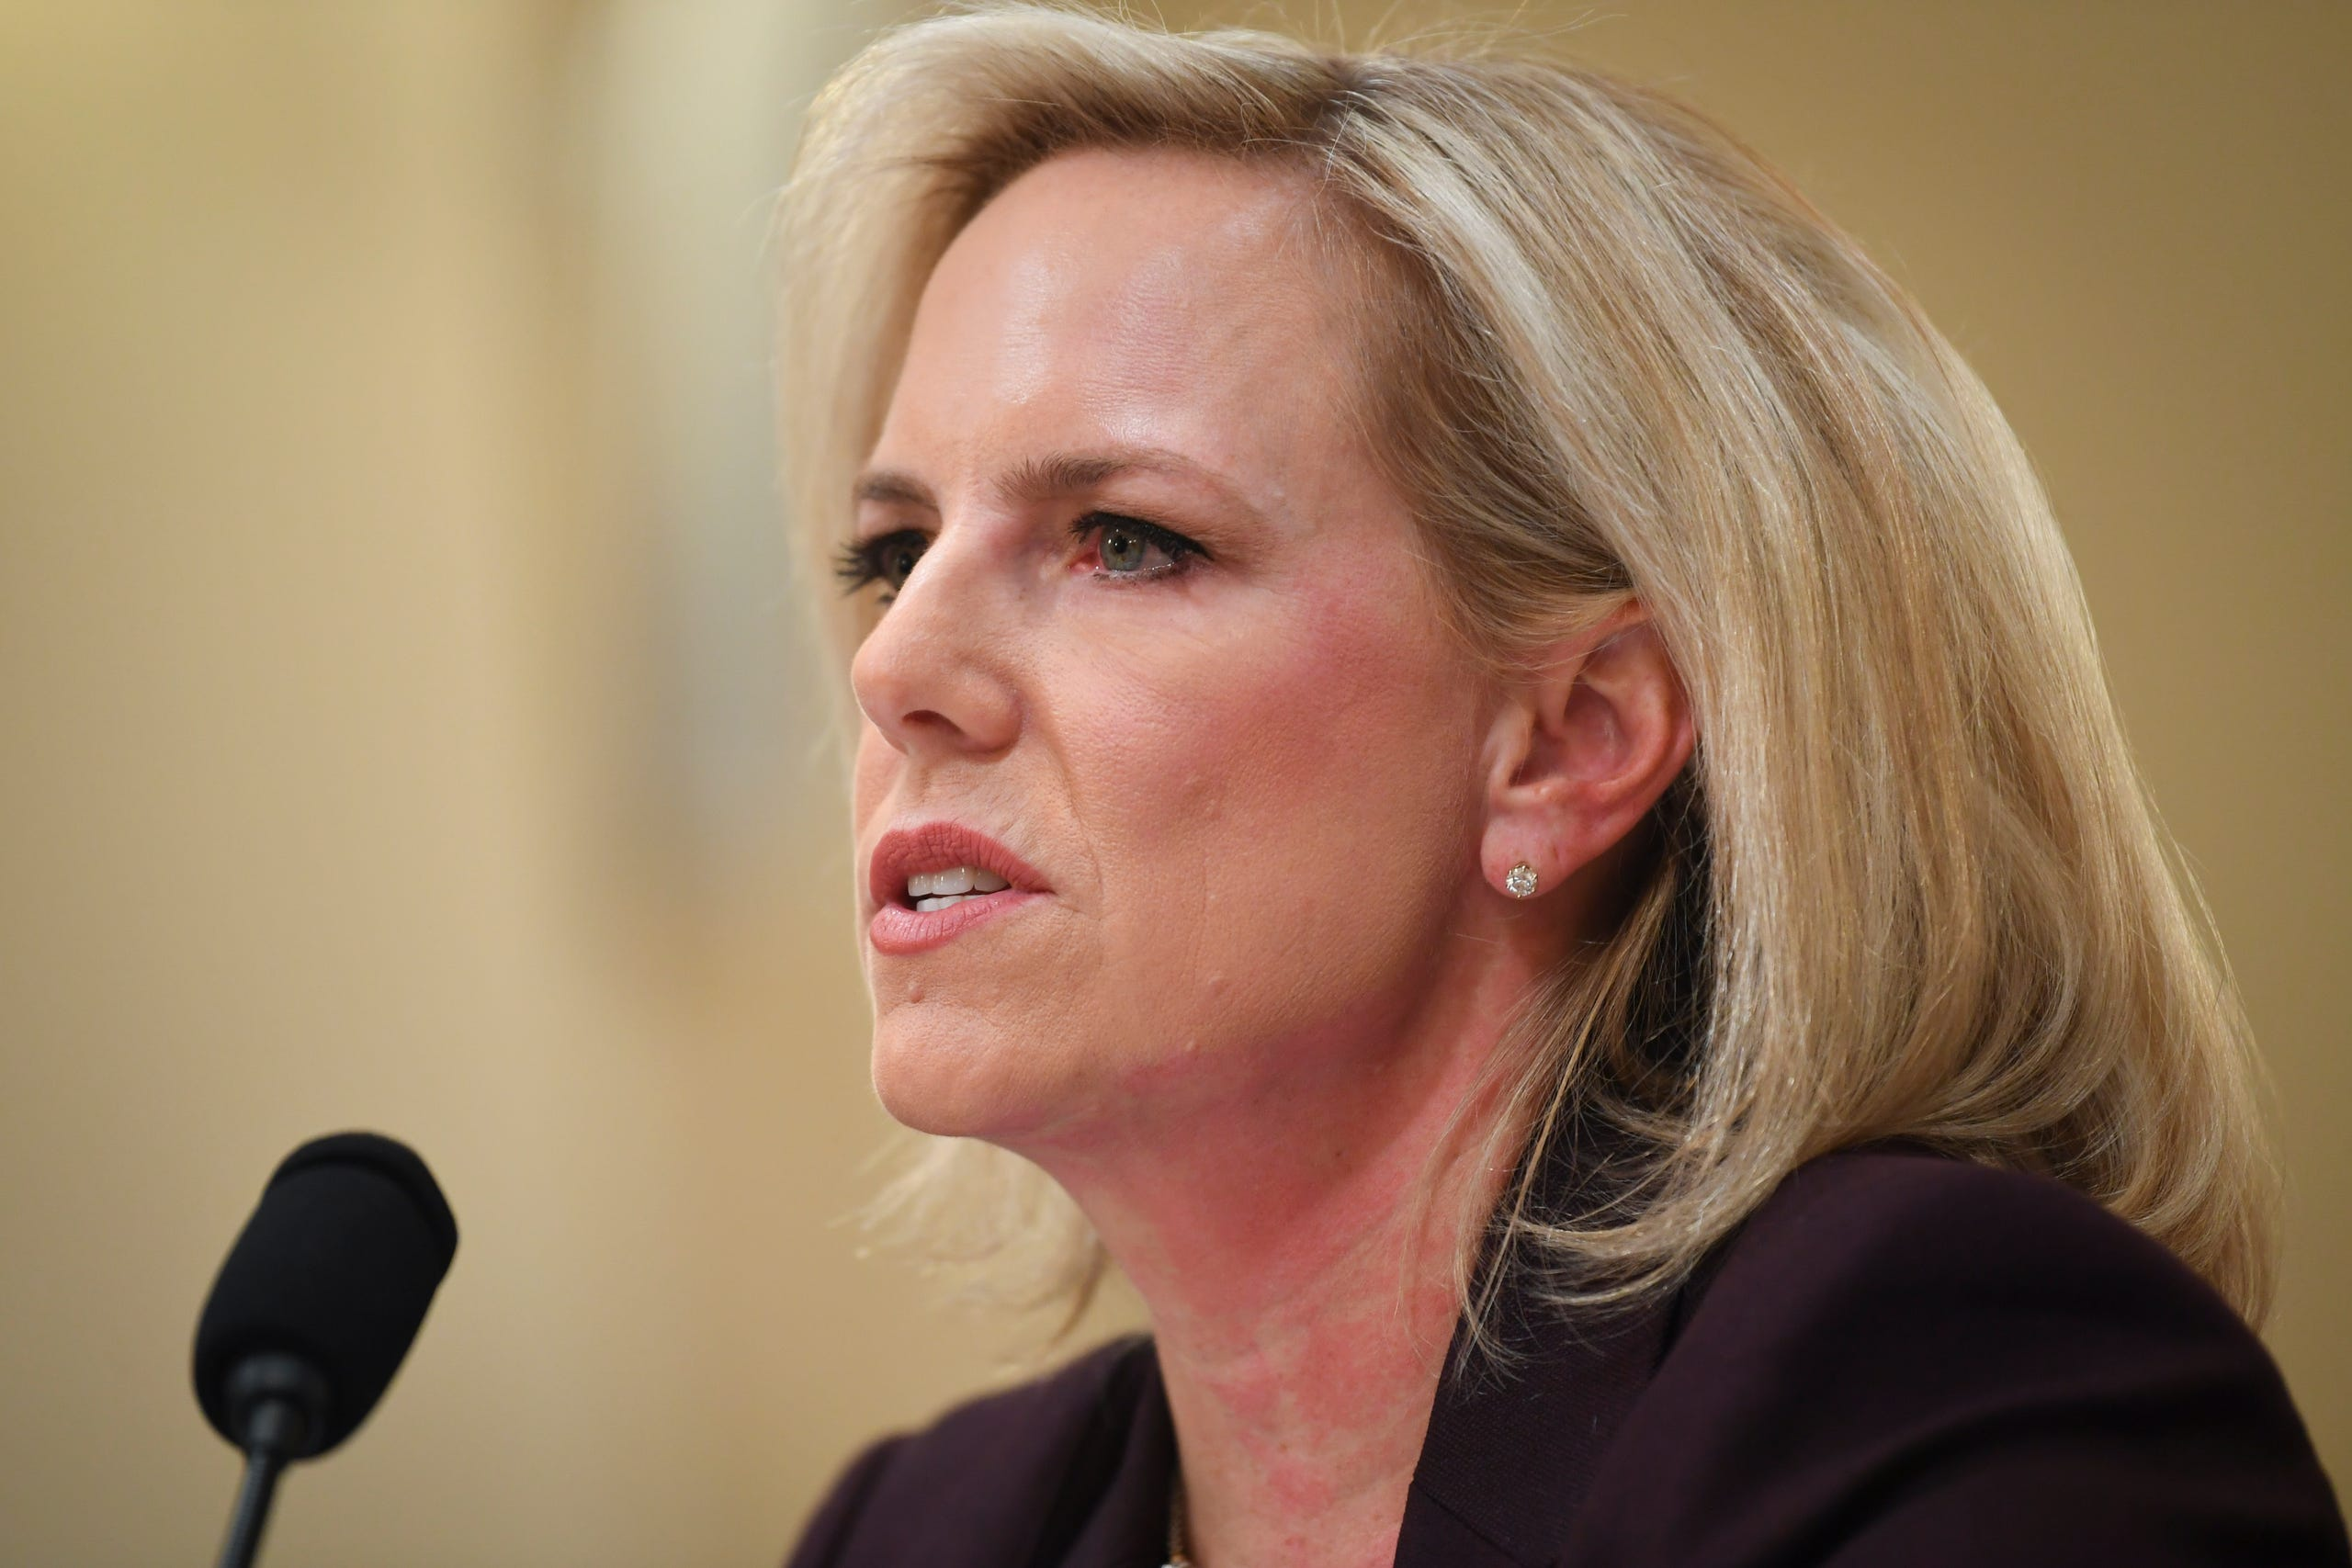 Homeland Security Secretary Kirstjen Nielsen resigned on April 7, 2019 amid a surge in migrants arriving at the U.S.-Mexico border that put massive strains on America's immigration system.